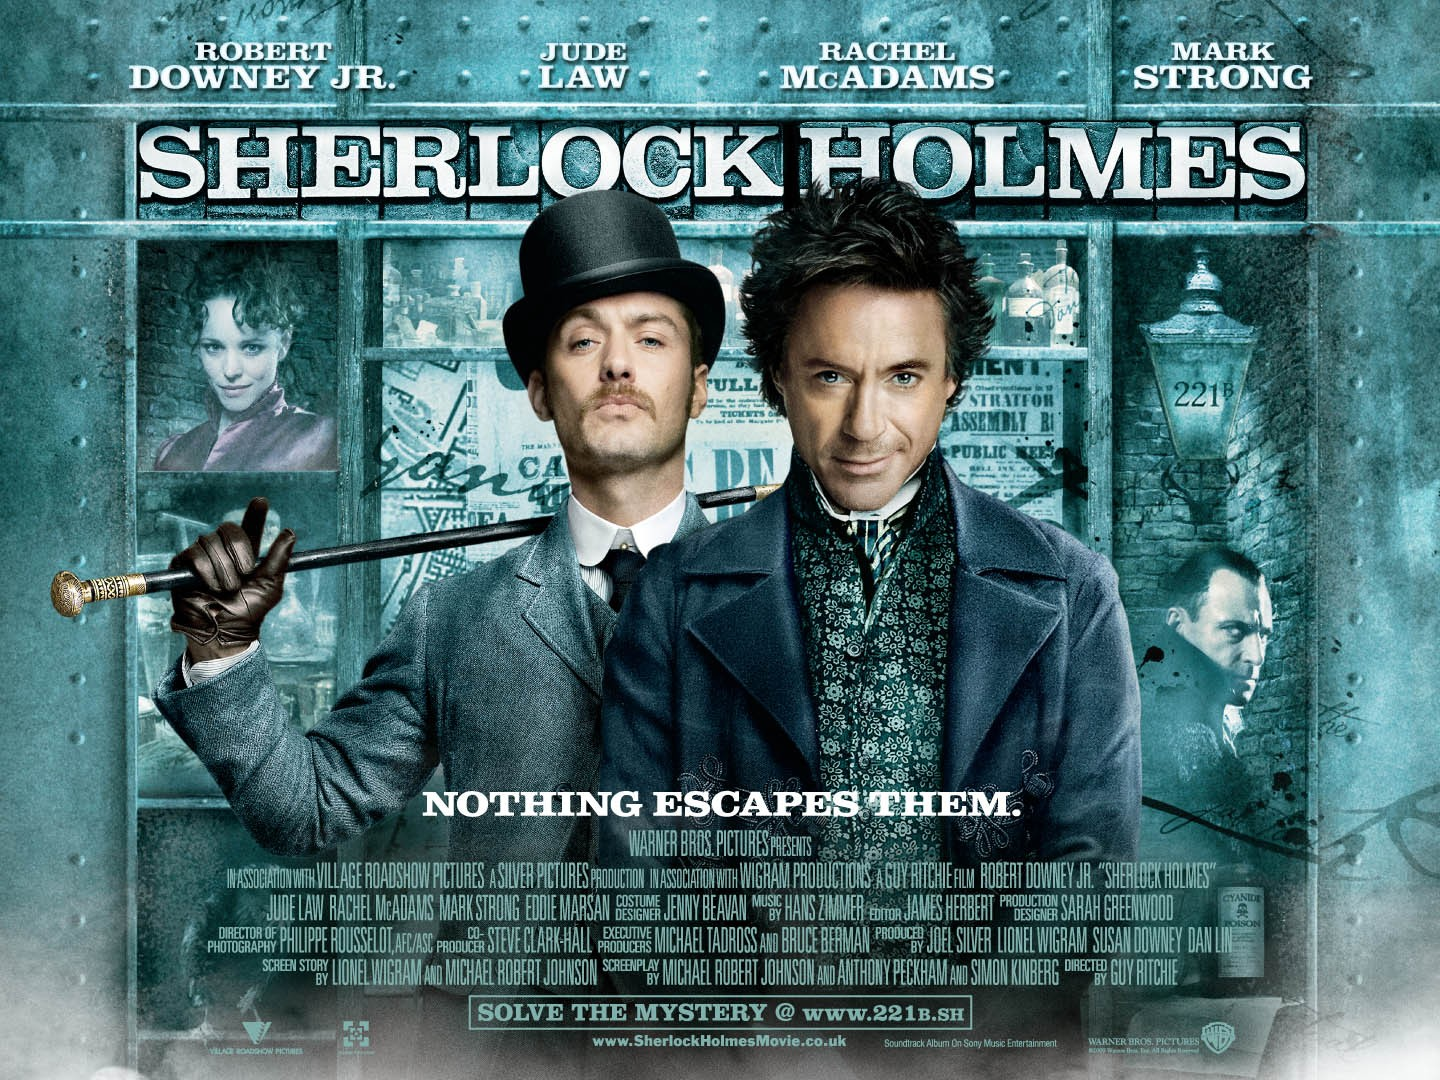 the best of sherlock holmes The best sherlock holmes stories, conan doyle manuscripts, rare books, and other top 10 lists.